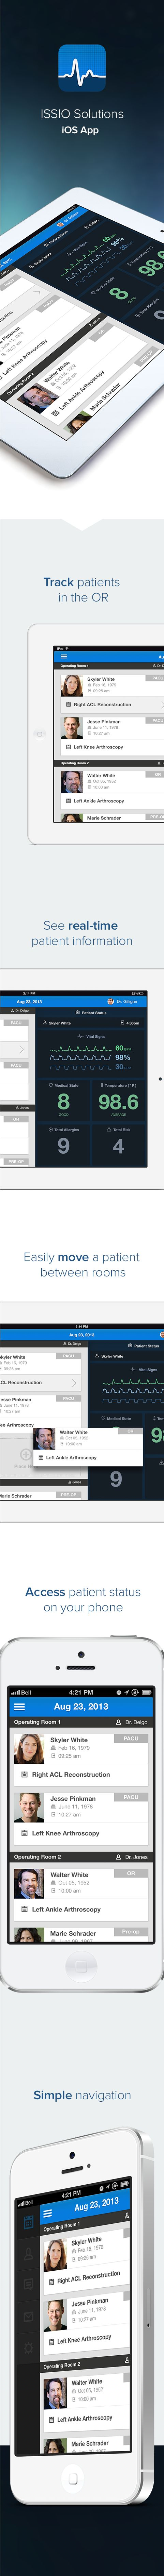 Issio Solutions |  EMR Application (iOS) by Steve Chen, via Behance